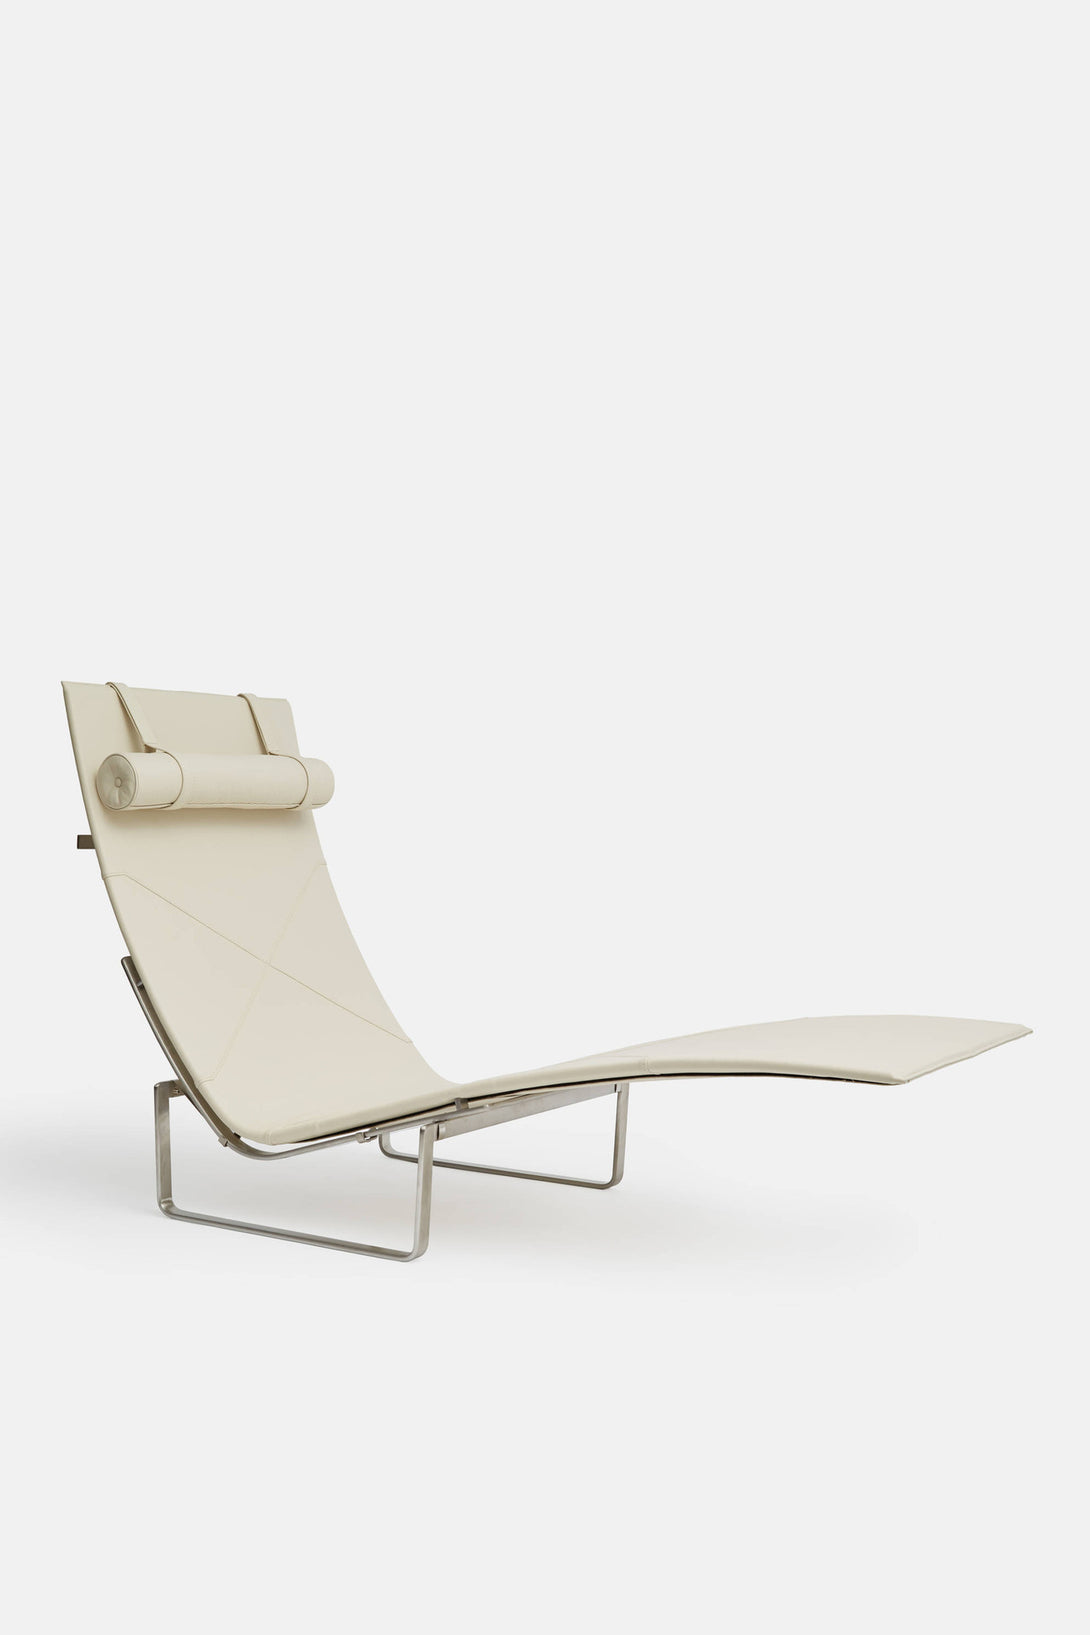 PK24 Chaise Lounge   White Leather